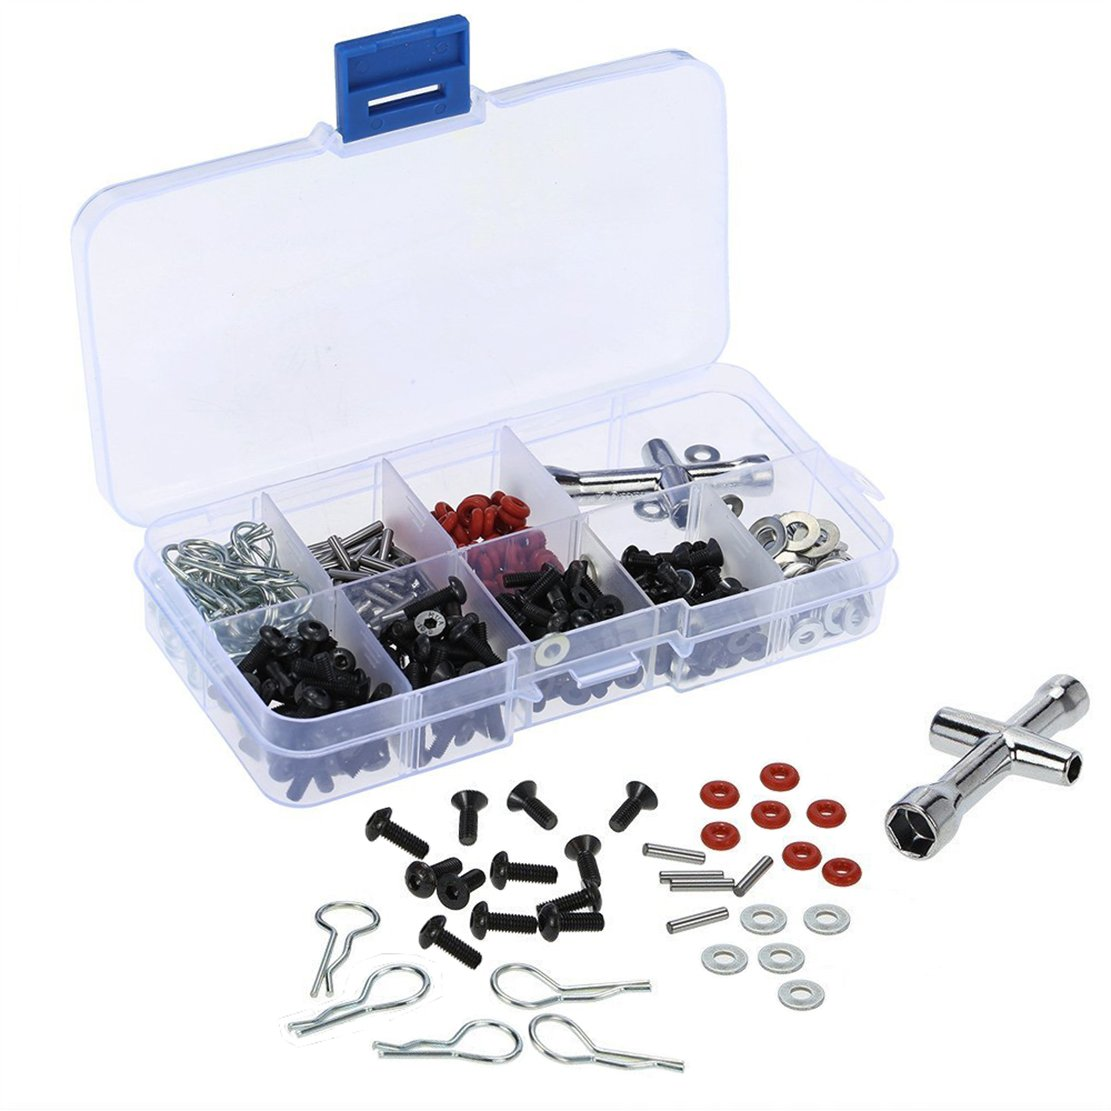 ShareGoo Special Repair Tool & Screws Box for 1/10 HSP RC Car (240/Lot)